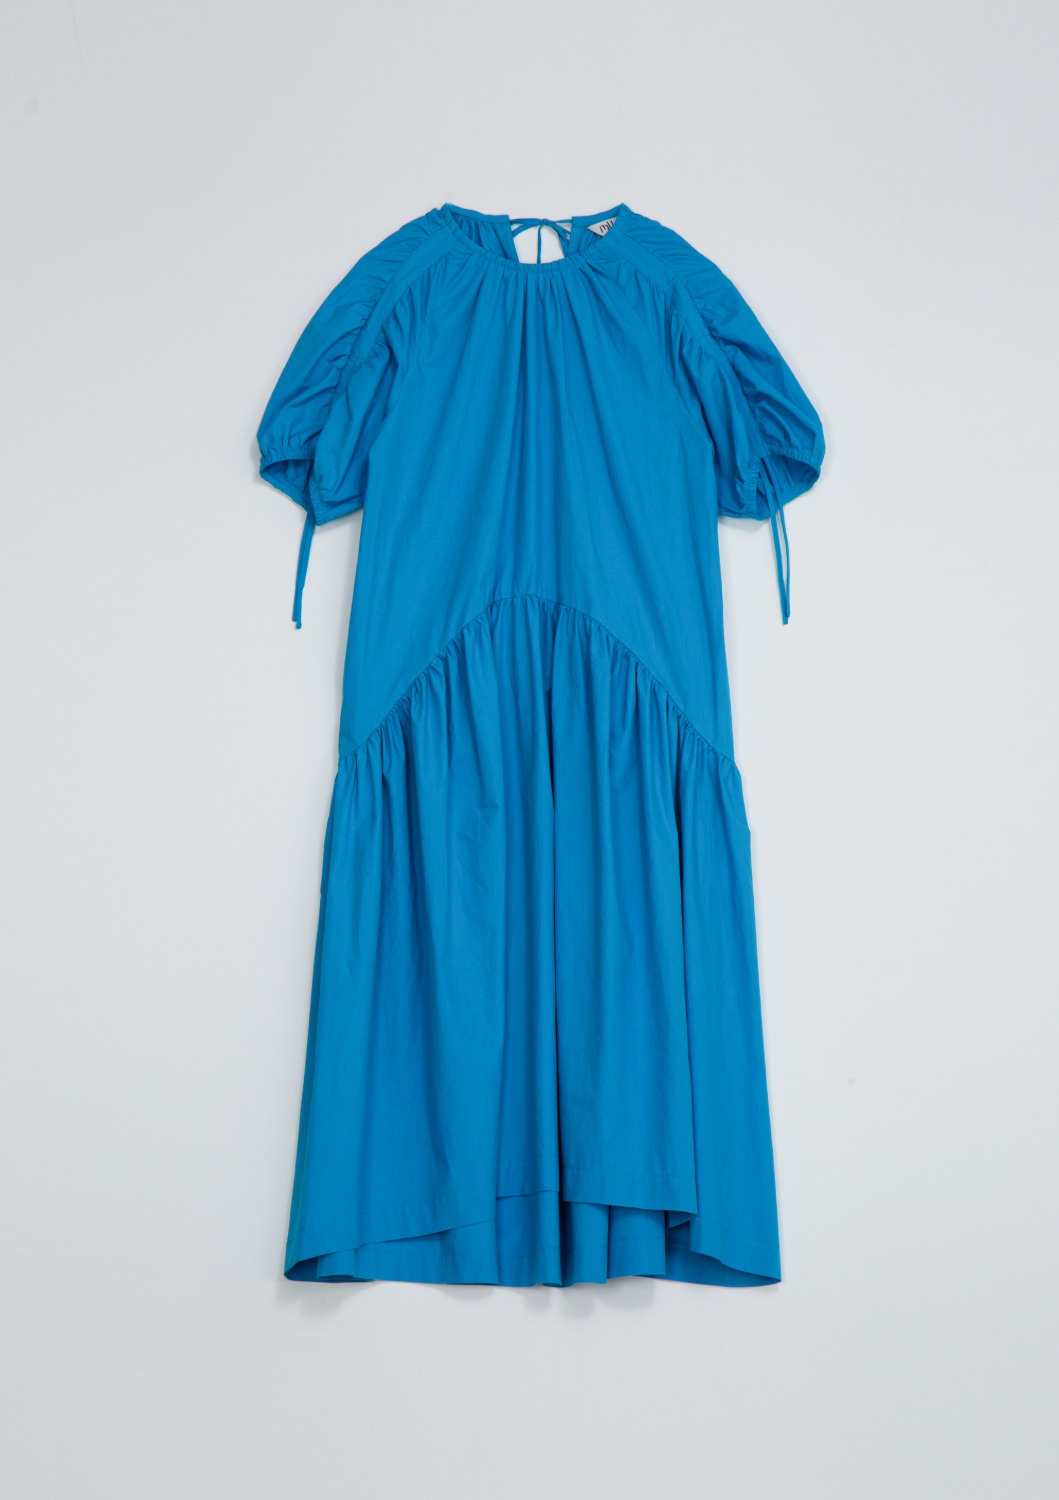 Belle Lucing Dress - Aqua Blue Cotton